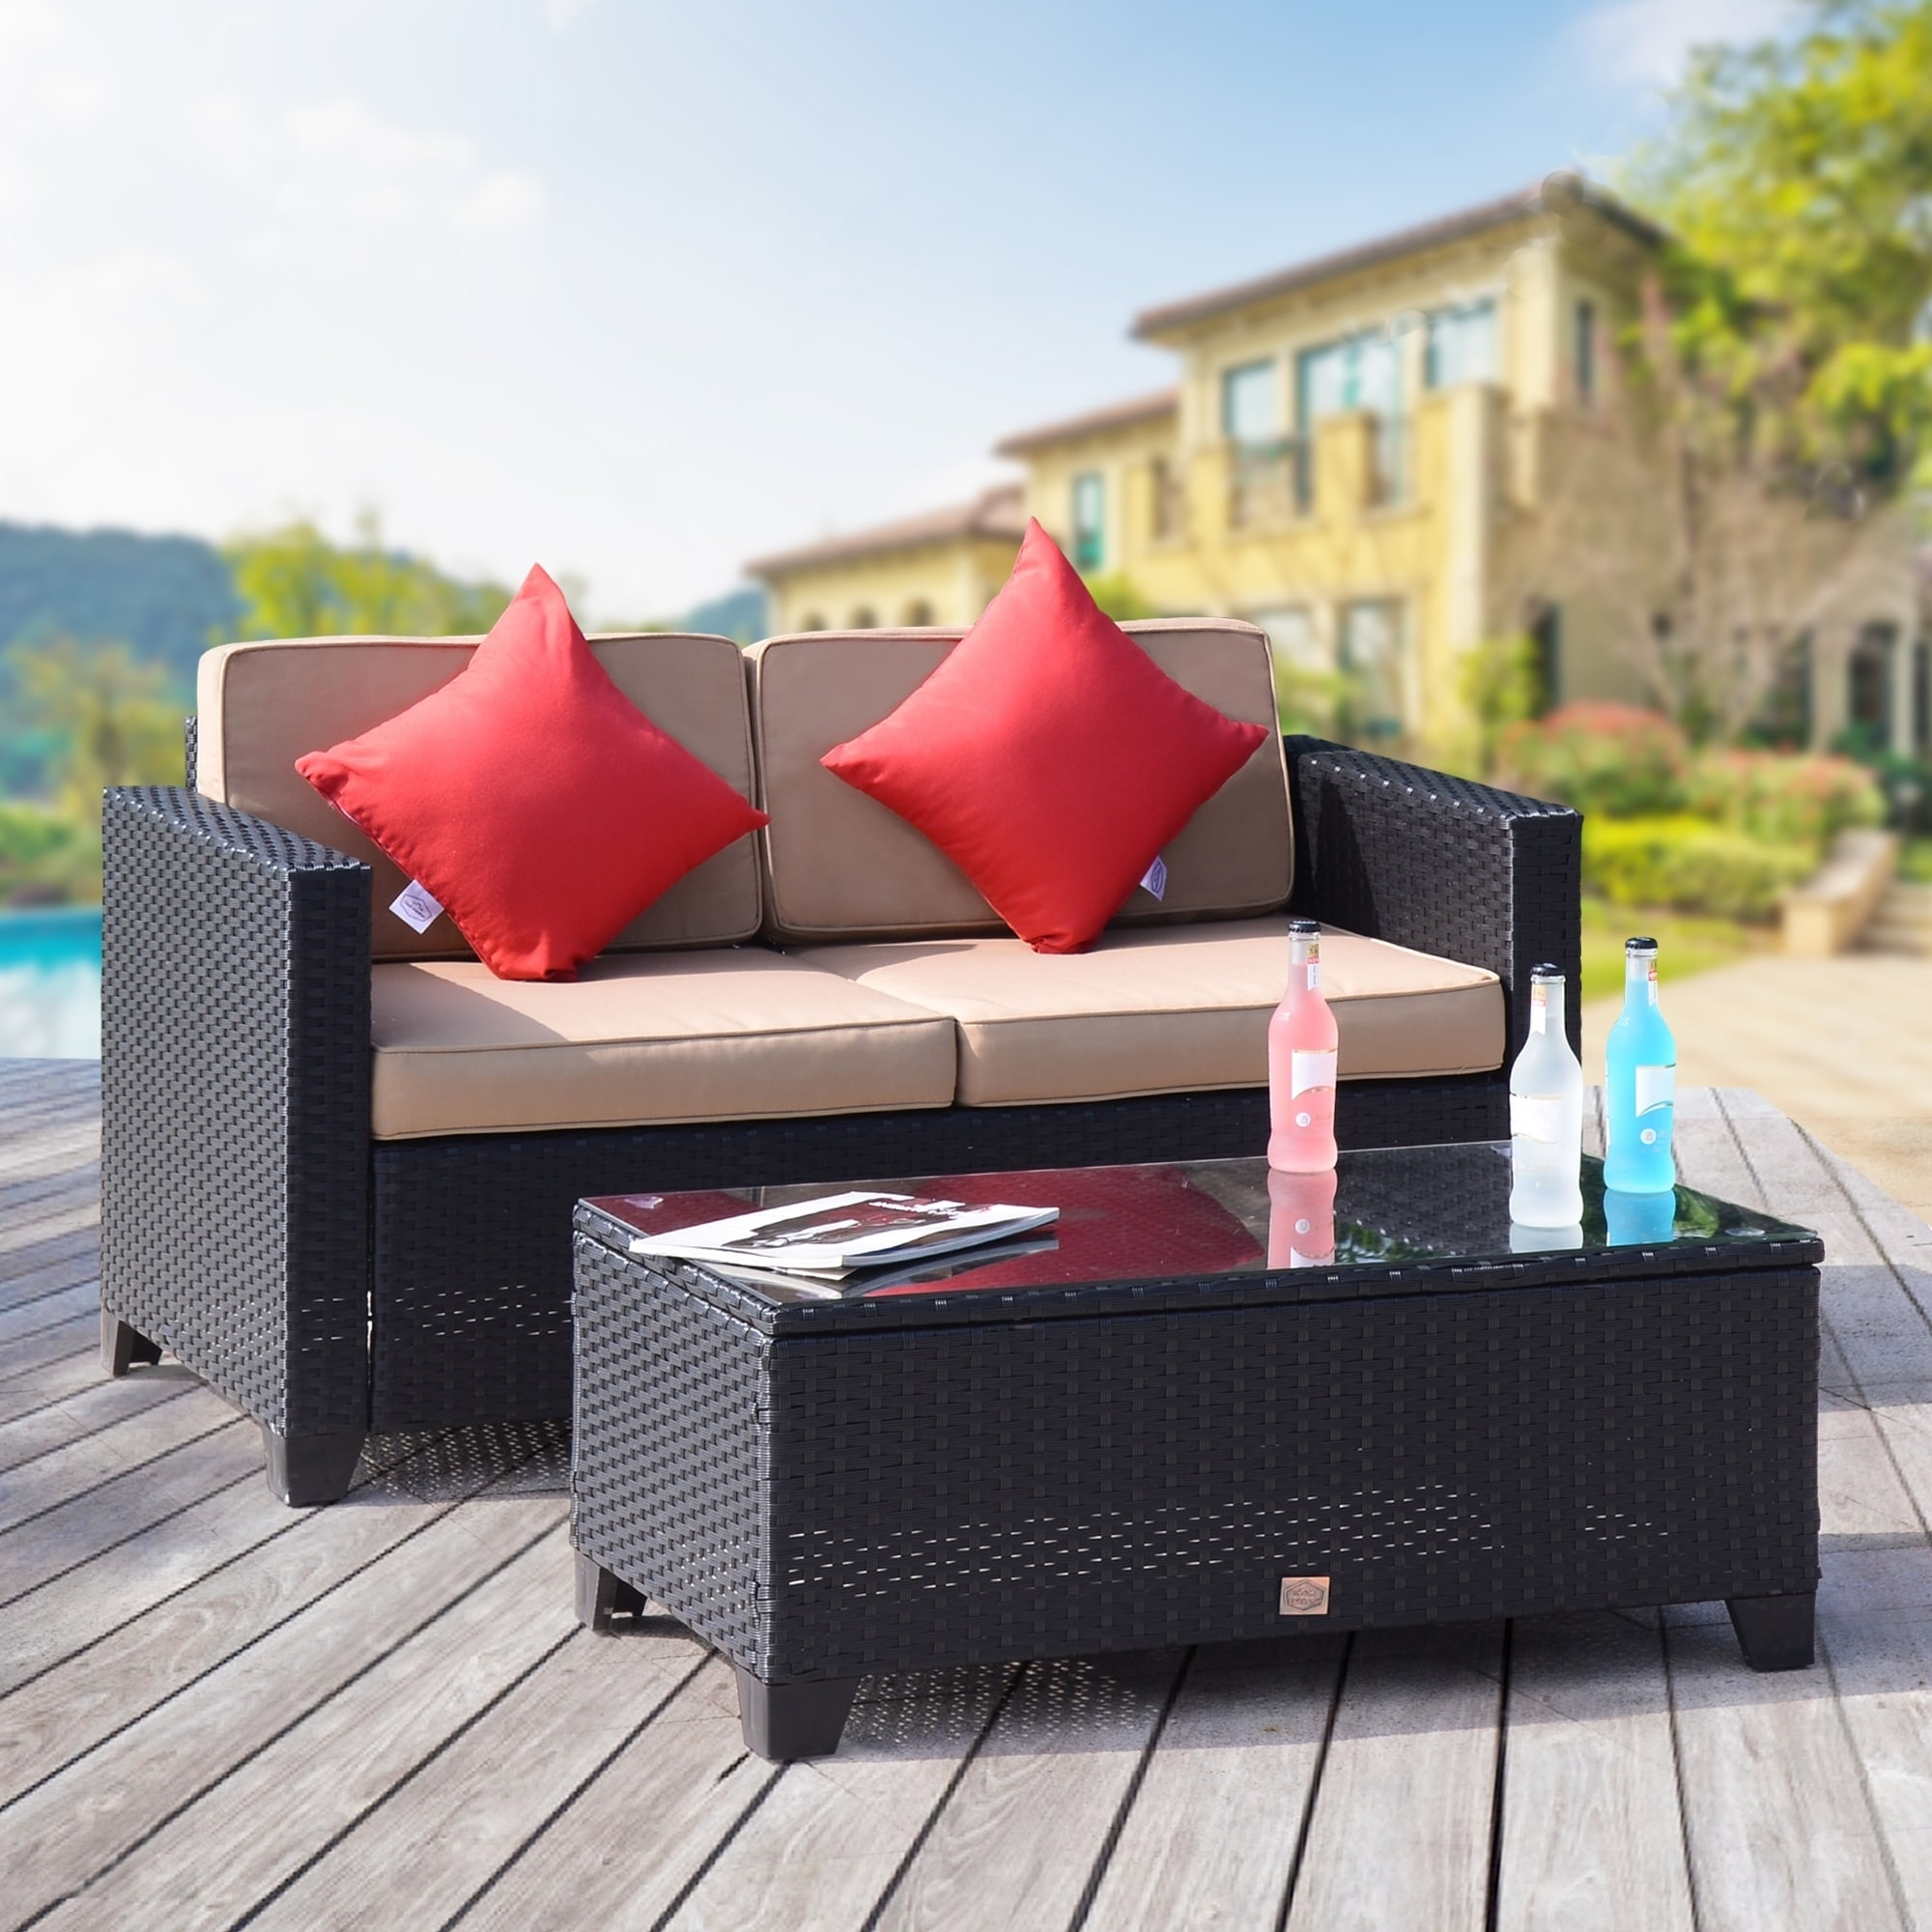 Shop Black Friday Deals On 2 Pc Rattan Furniture Bistro Set Outdoor Wicker Patio Garden Loveseat Glass Top Table Black Rattan With Khaki Cushions Overstock 20755184